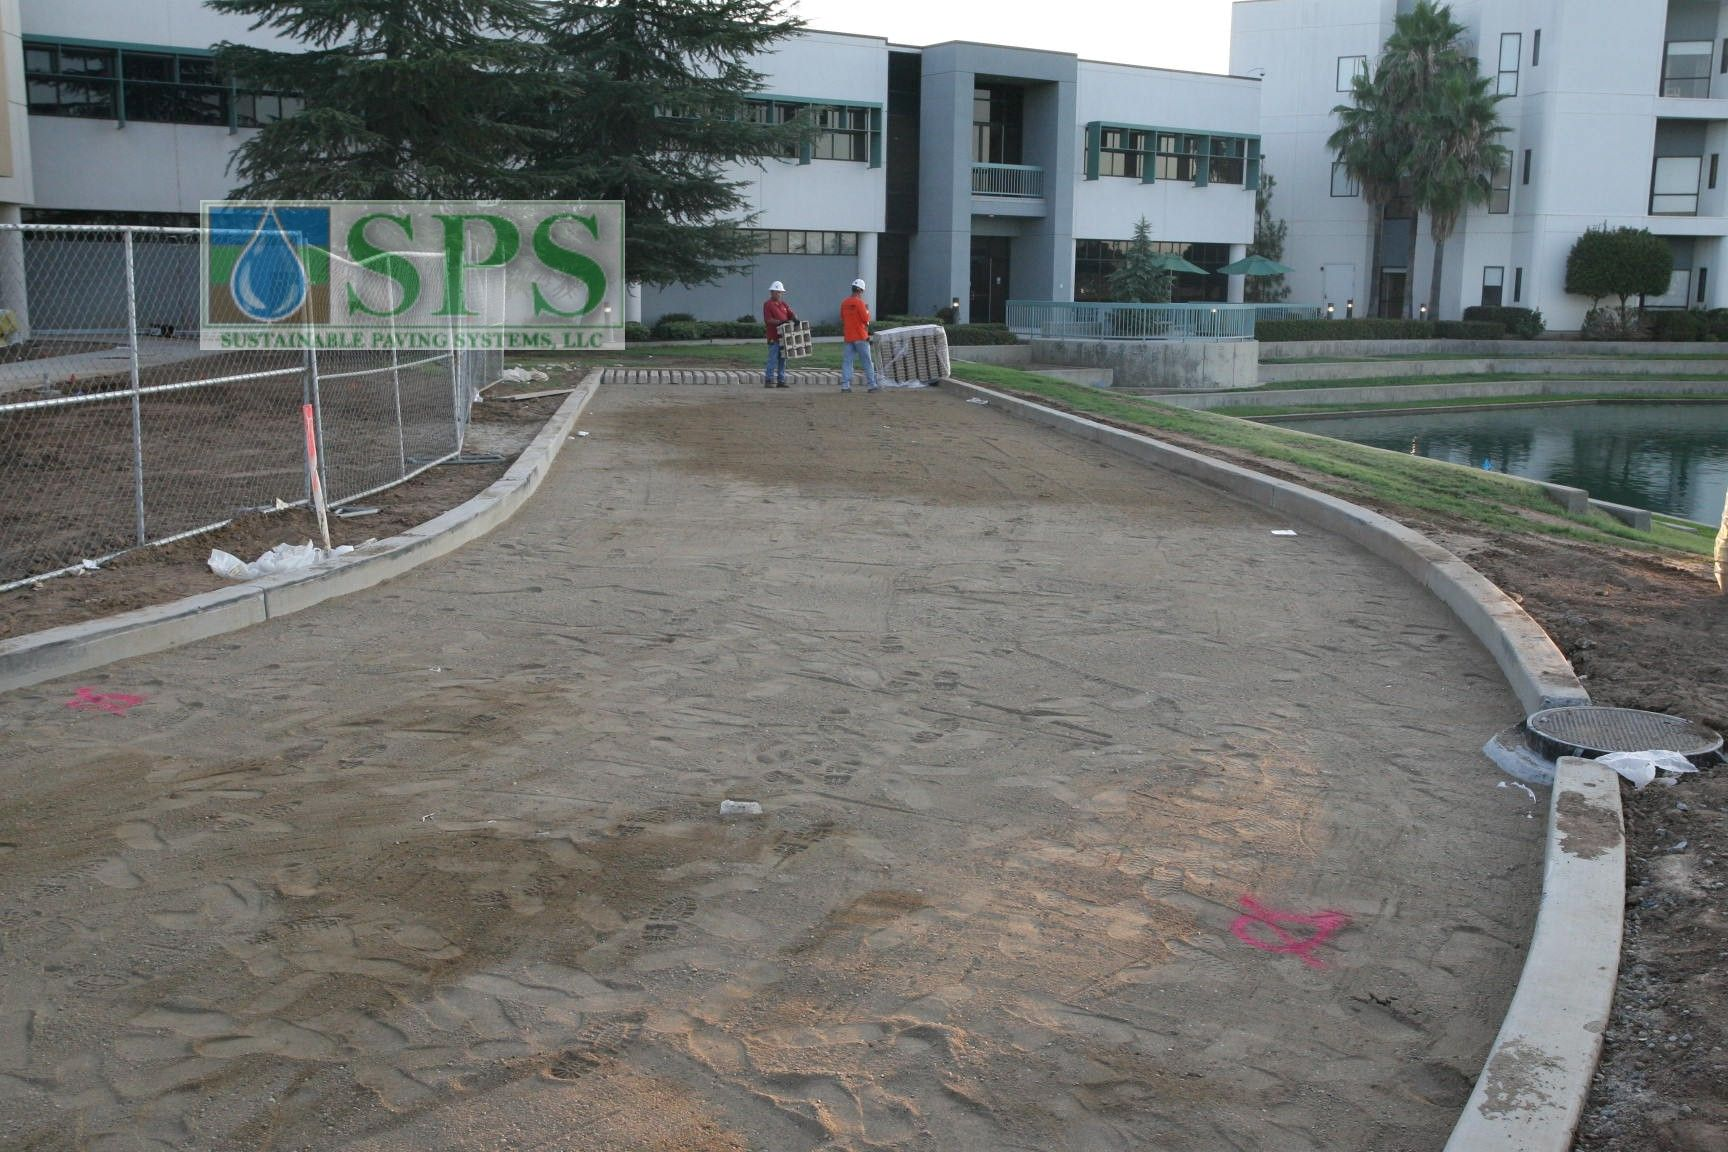 Molded Pulp Formers were used here for the installation of a concealed Grasscrete system that would be used as an emergency access road and were chosen specifically because they are made up of 100% recycled content and have the ability to degrade over time into the sub-soils.